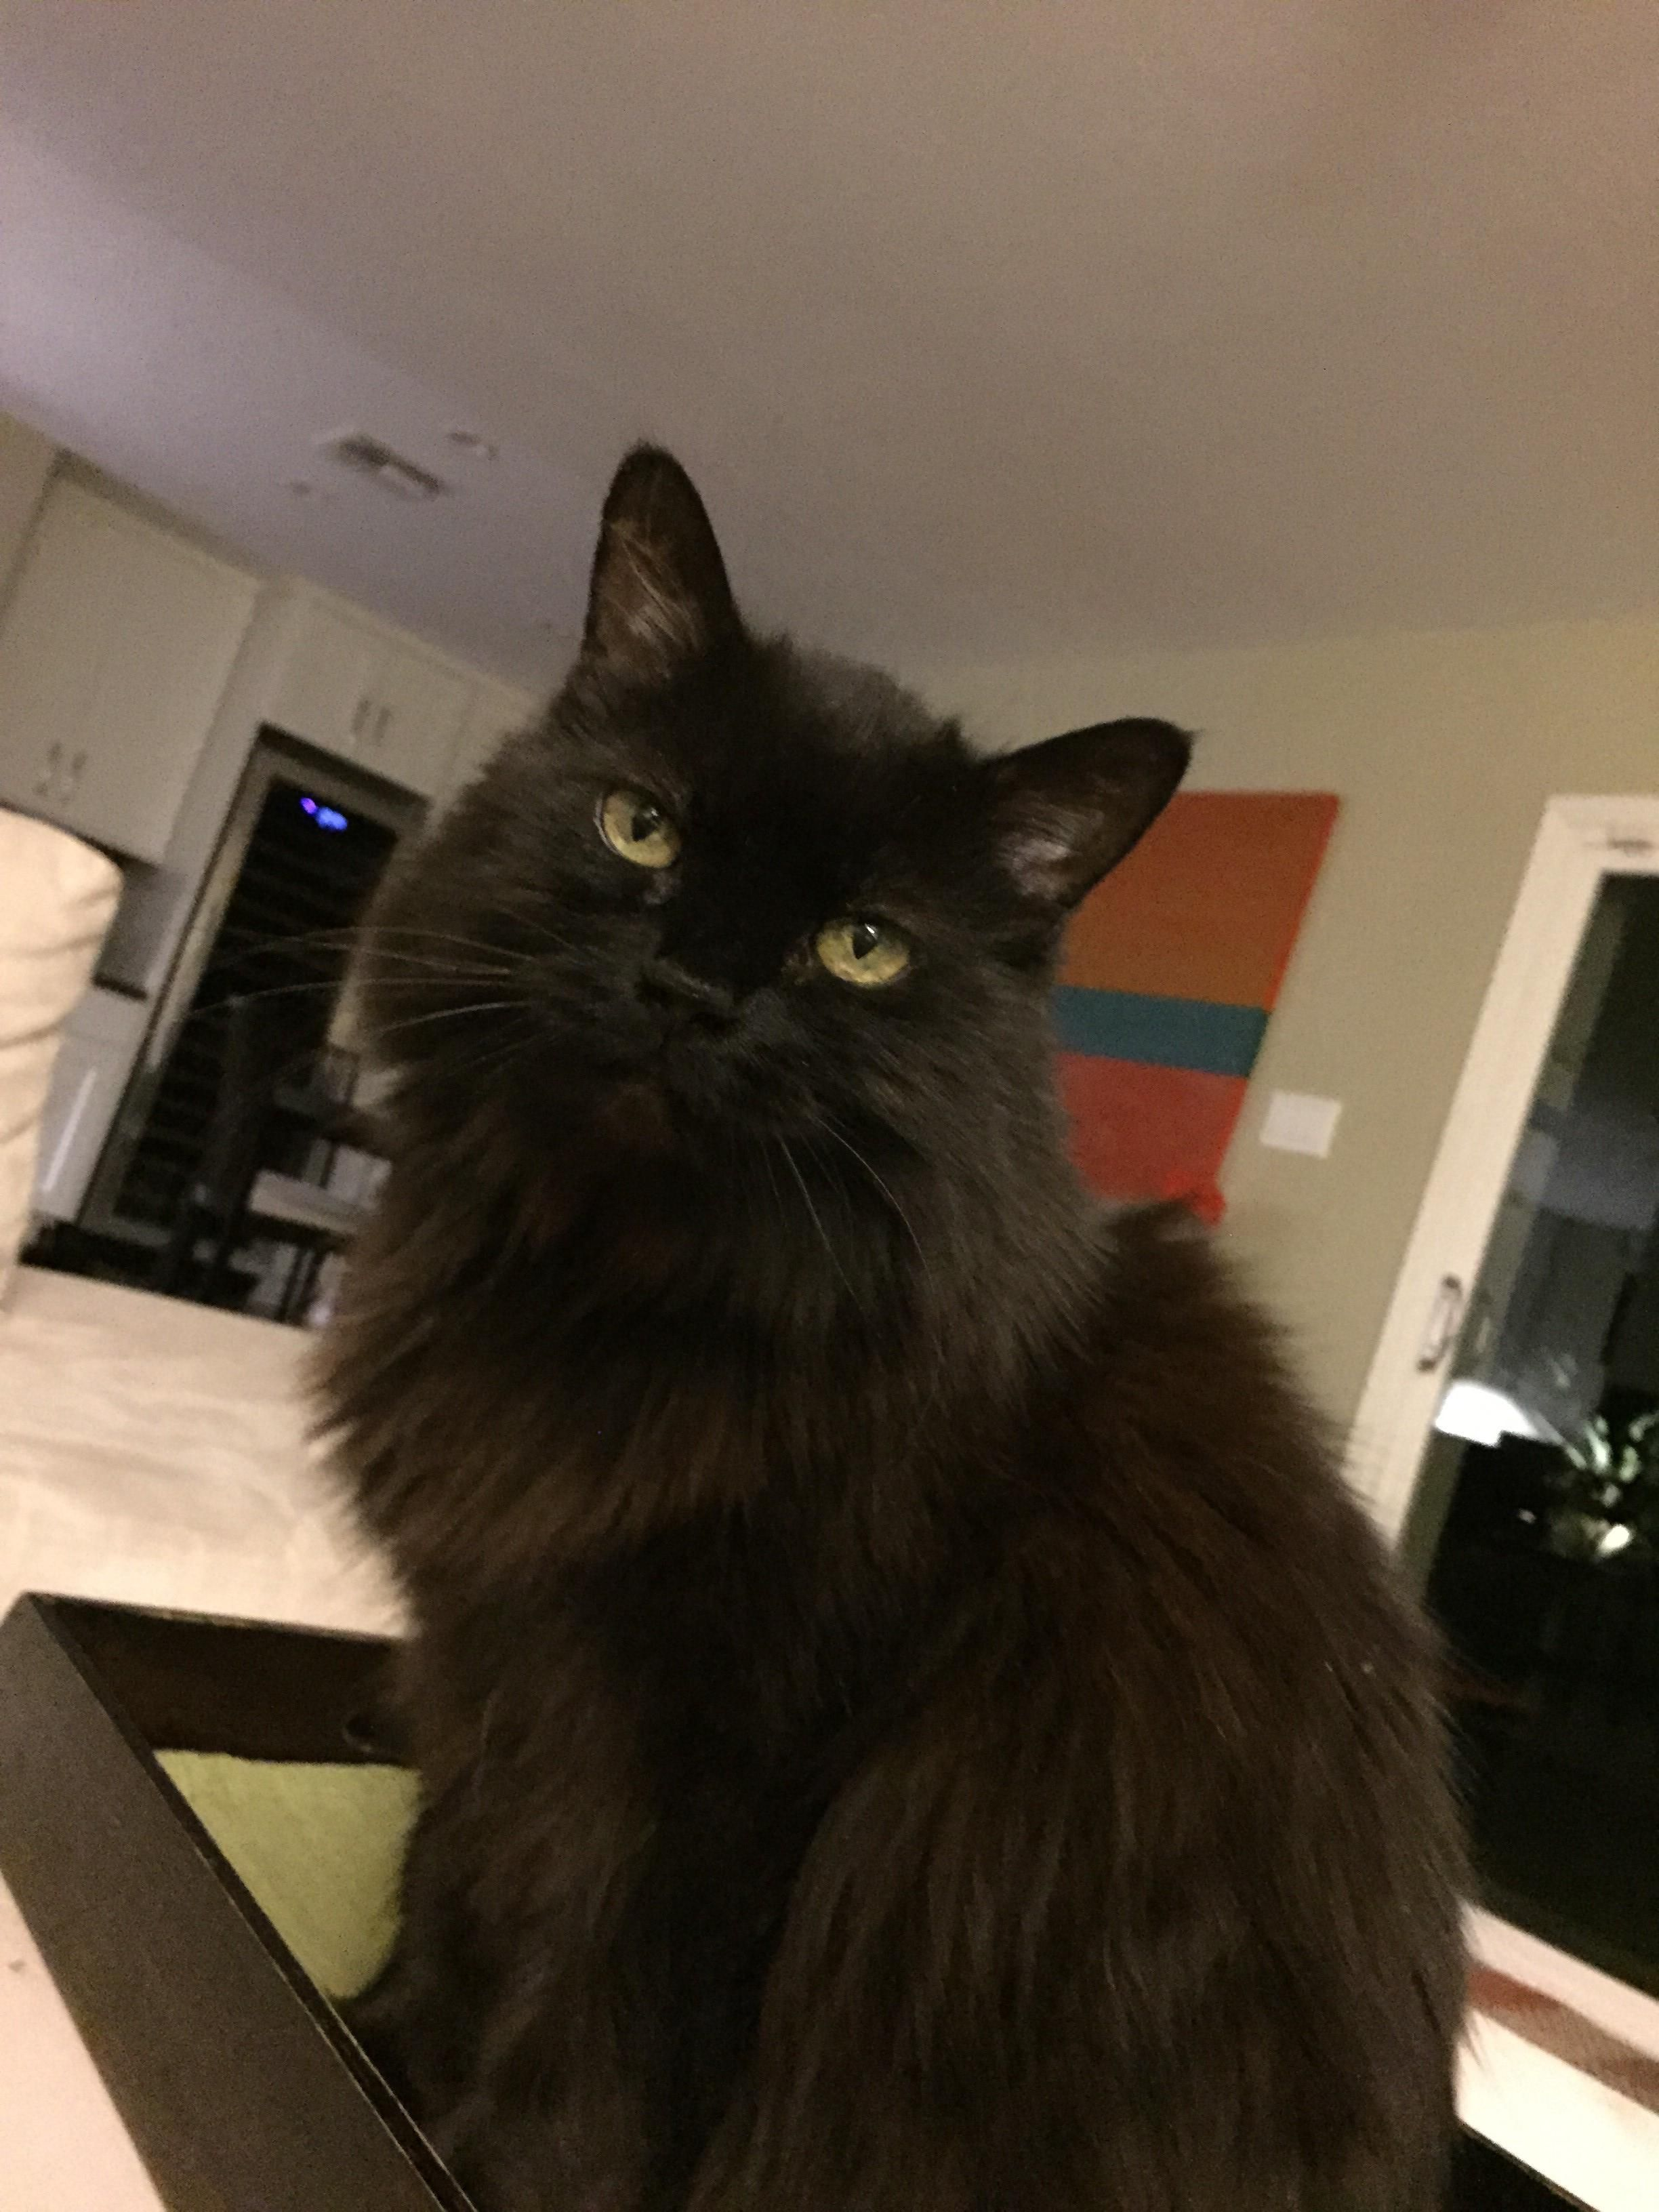 LOST NAME Pandora DESCRIPTION Longhaired, black cat with